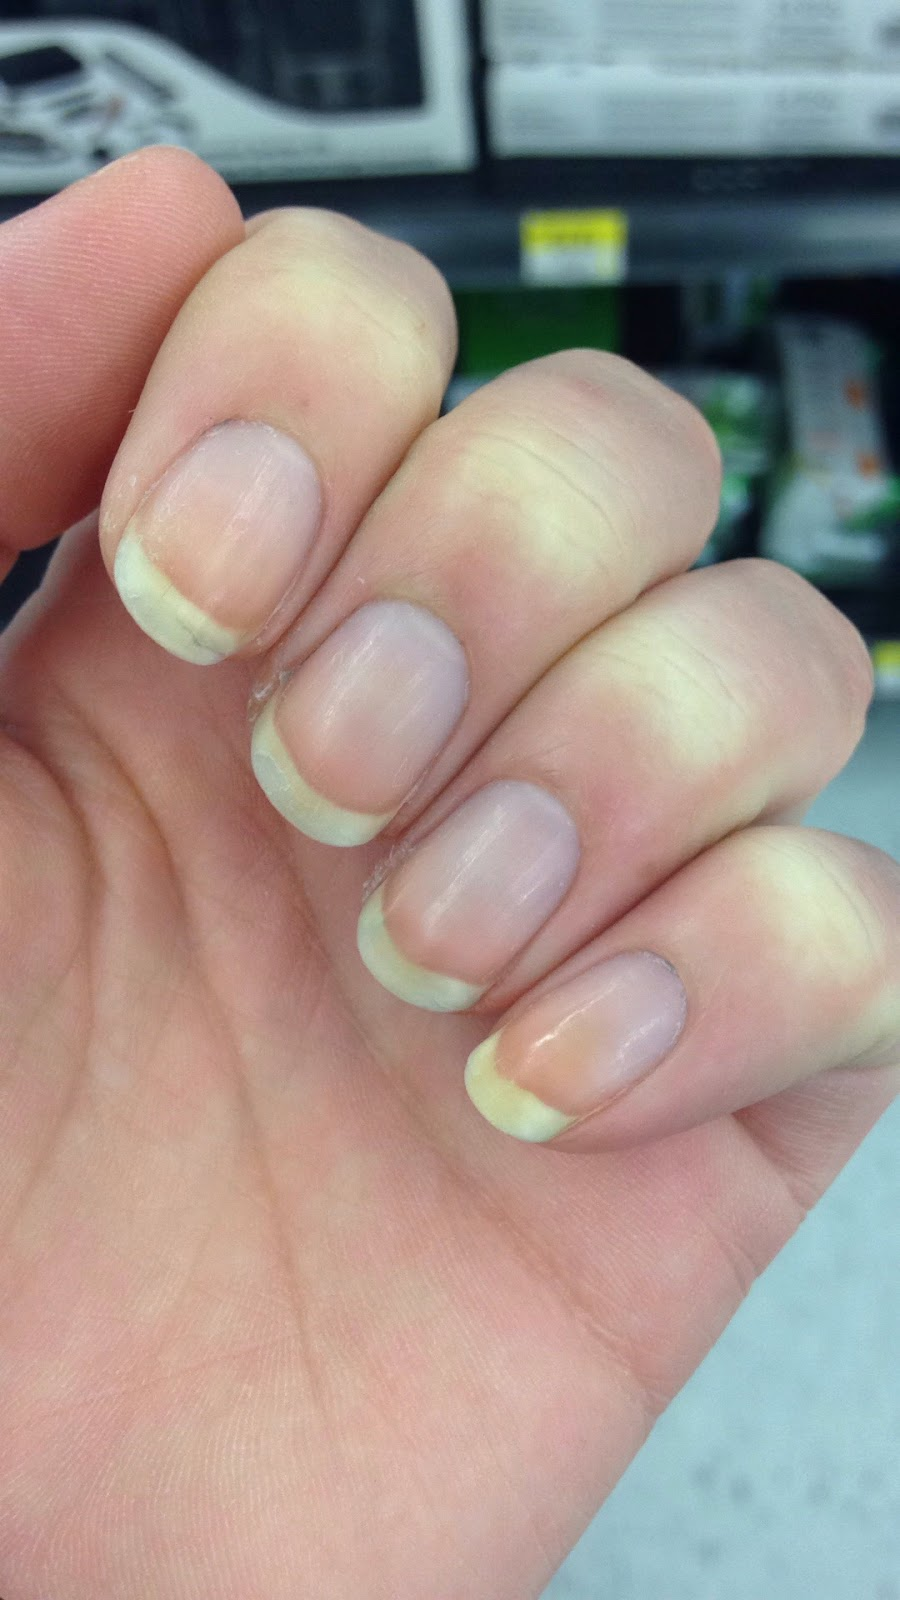 My Nail Polish Obsession My Birthday Nails: Blondie's Nails: Cuticle Oil & Nail Growth